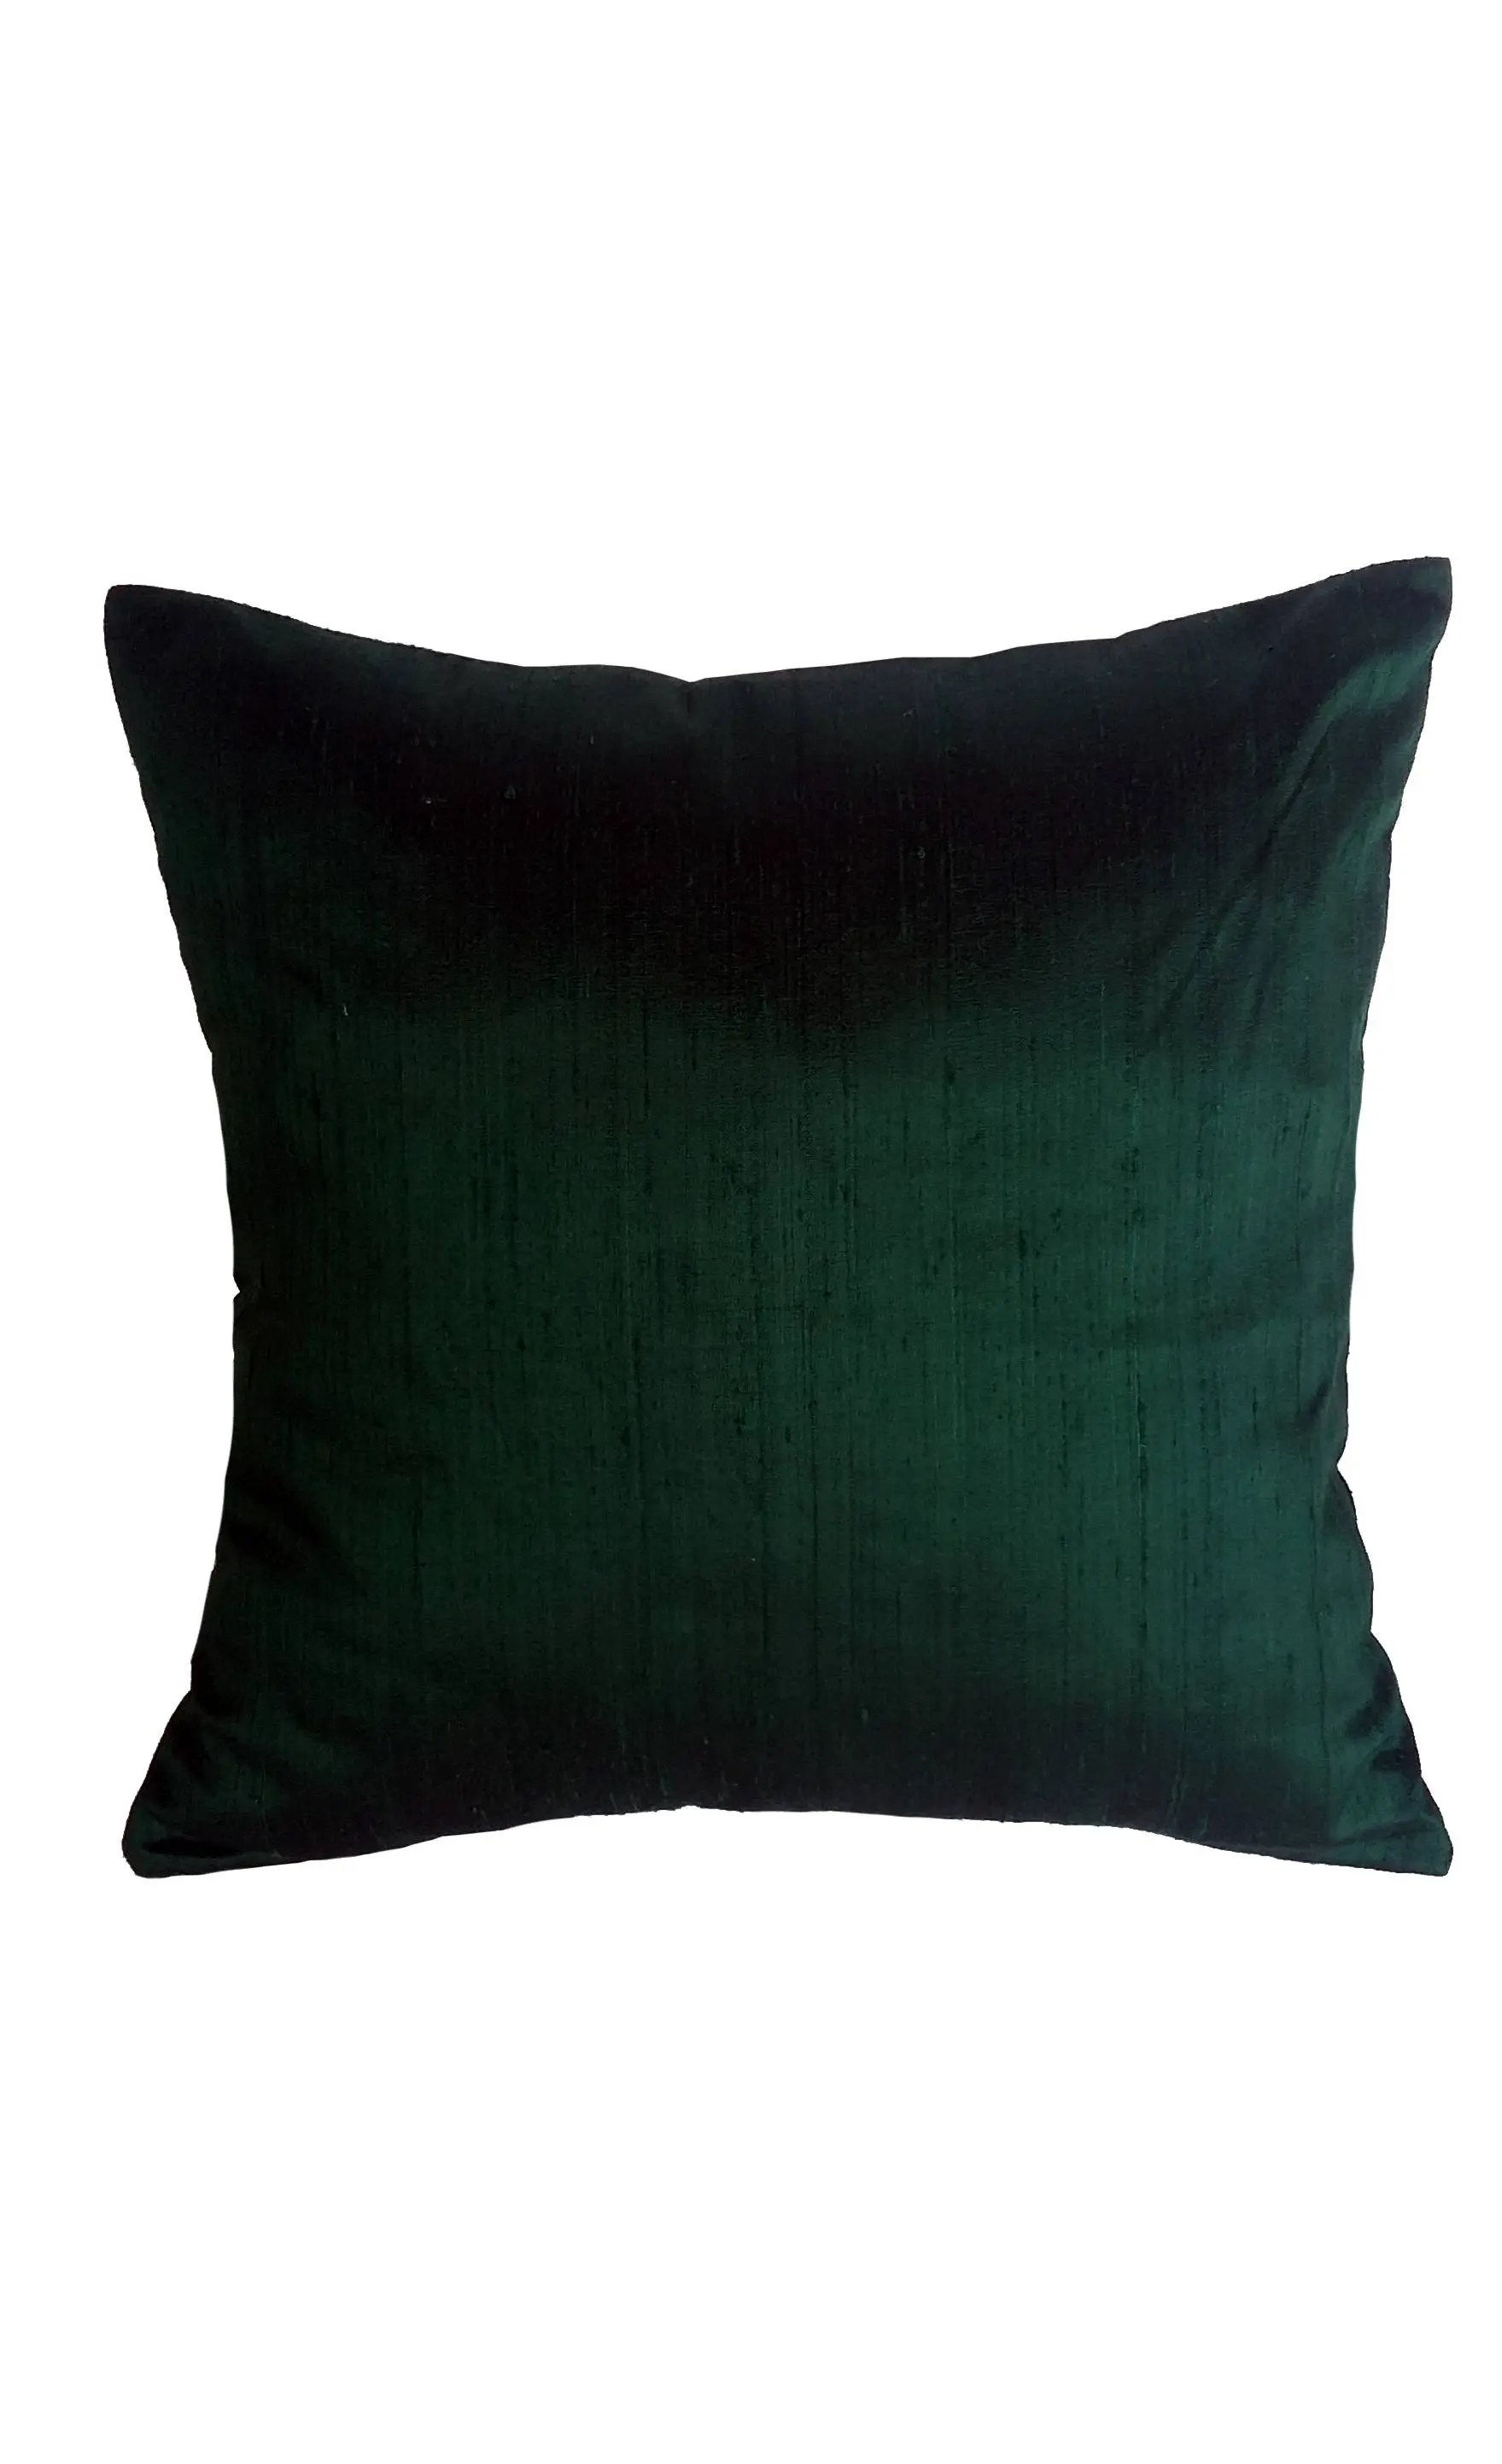 dark green pillow forest green dupioni silk cushion cover jungle green decorative home decor custom made 12 to 26 inches oblong sizes